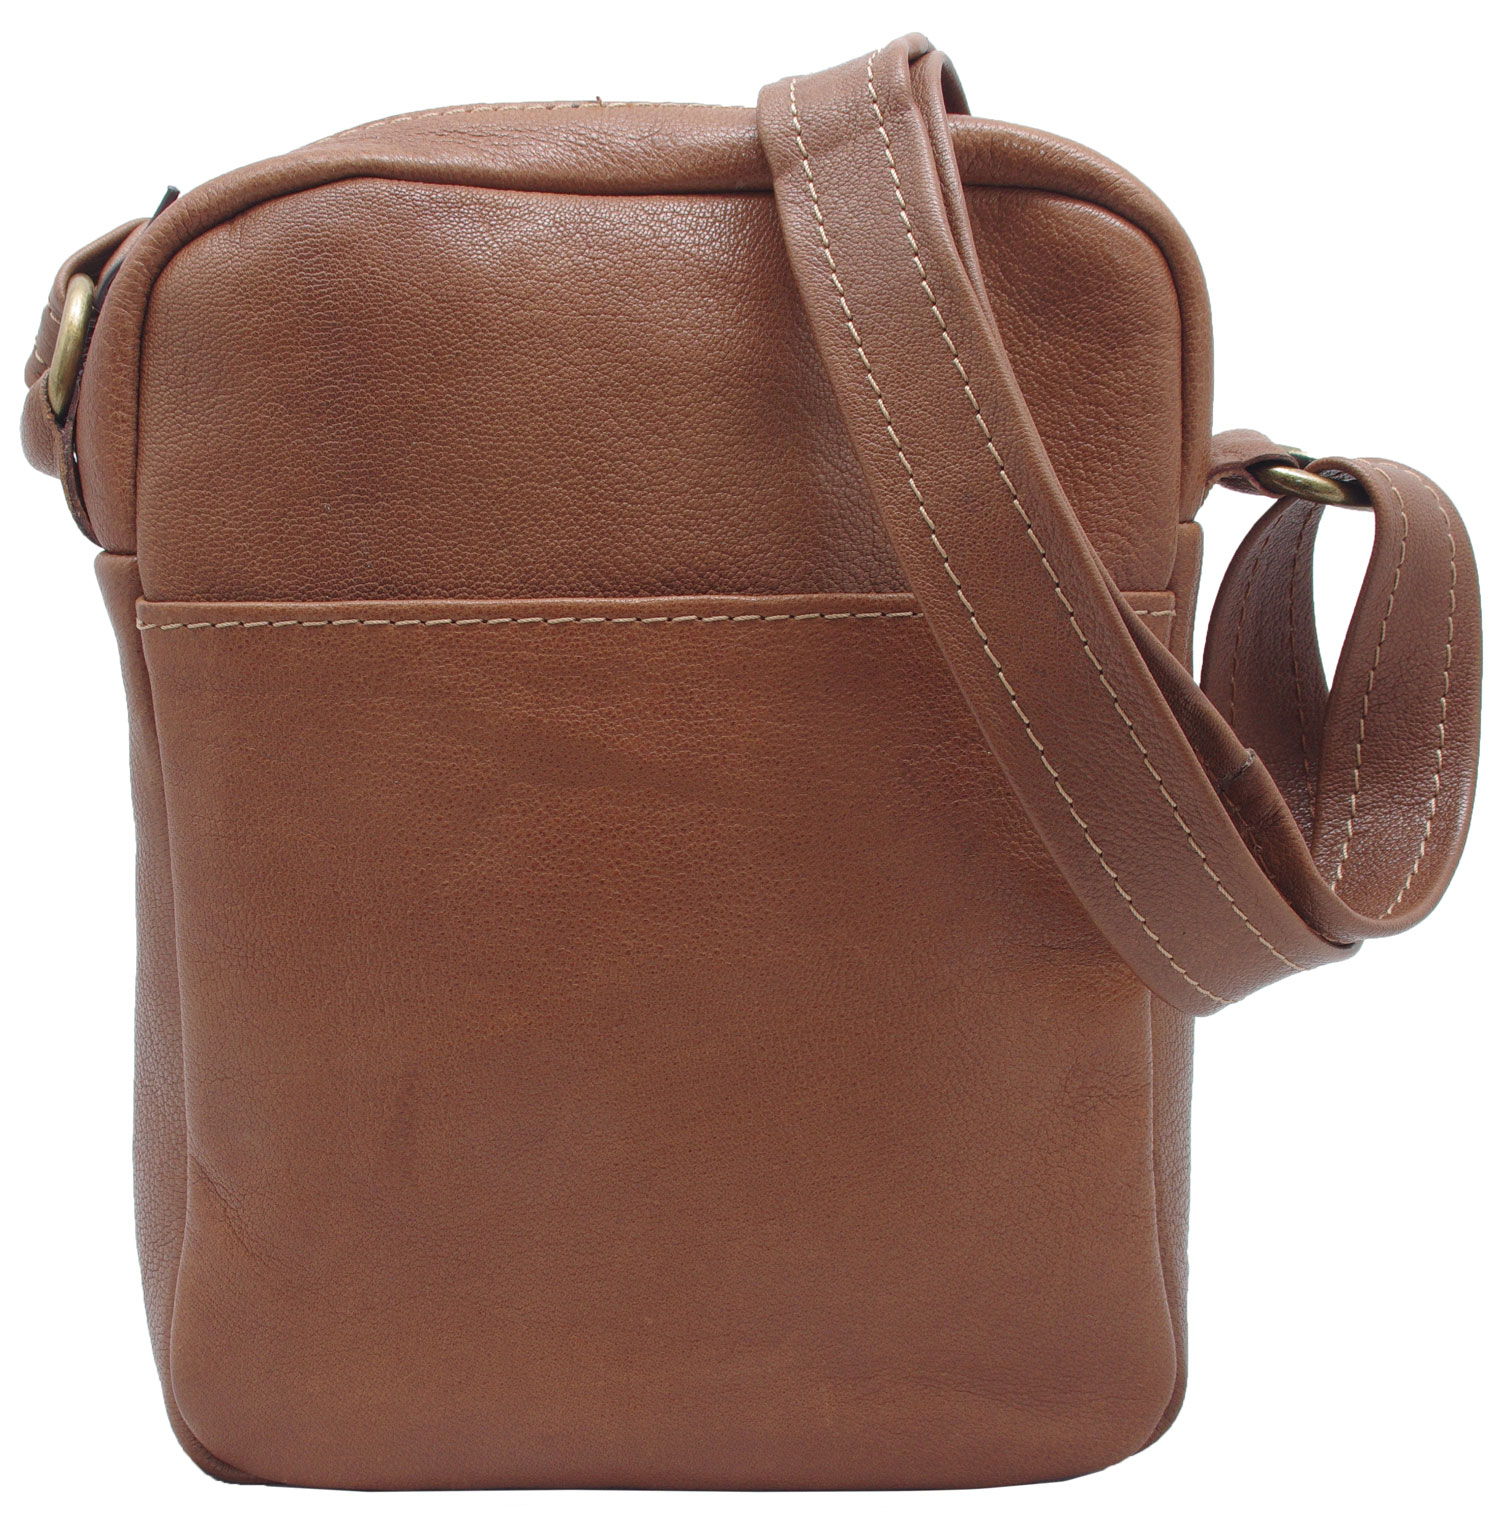 man-calf-full-grain-leather-soft-messenger-shoulder-bag